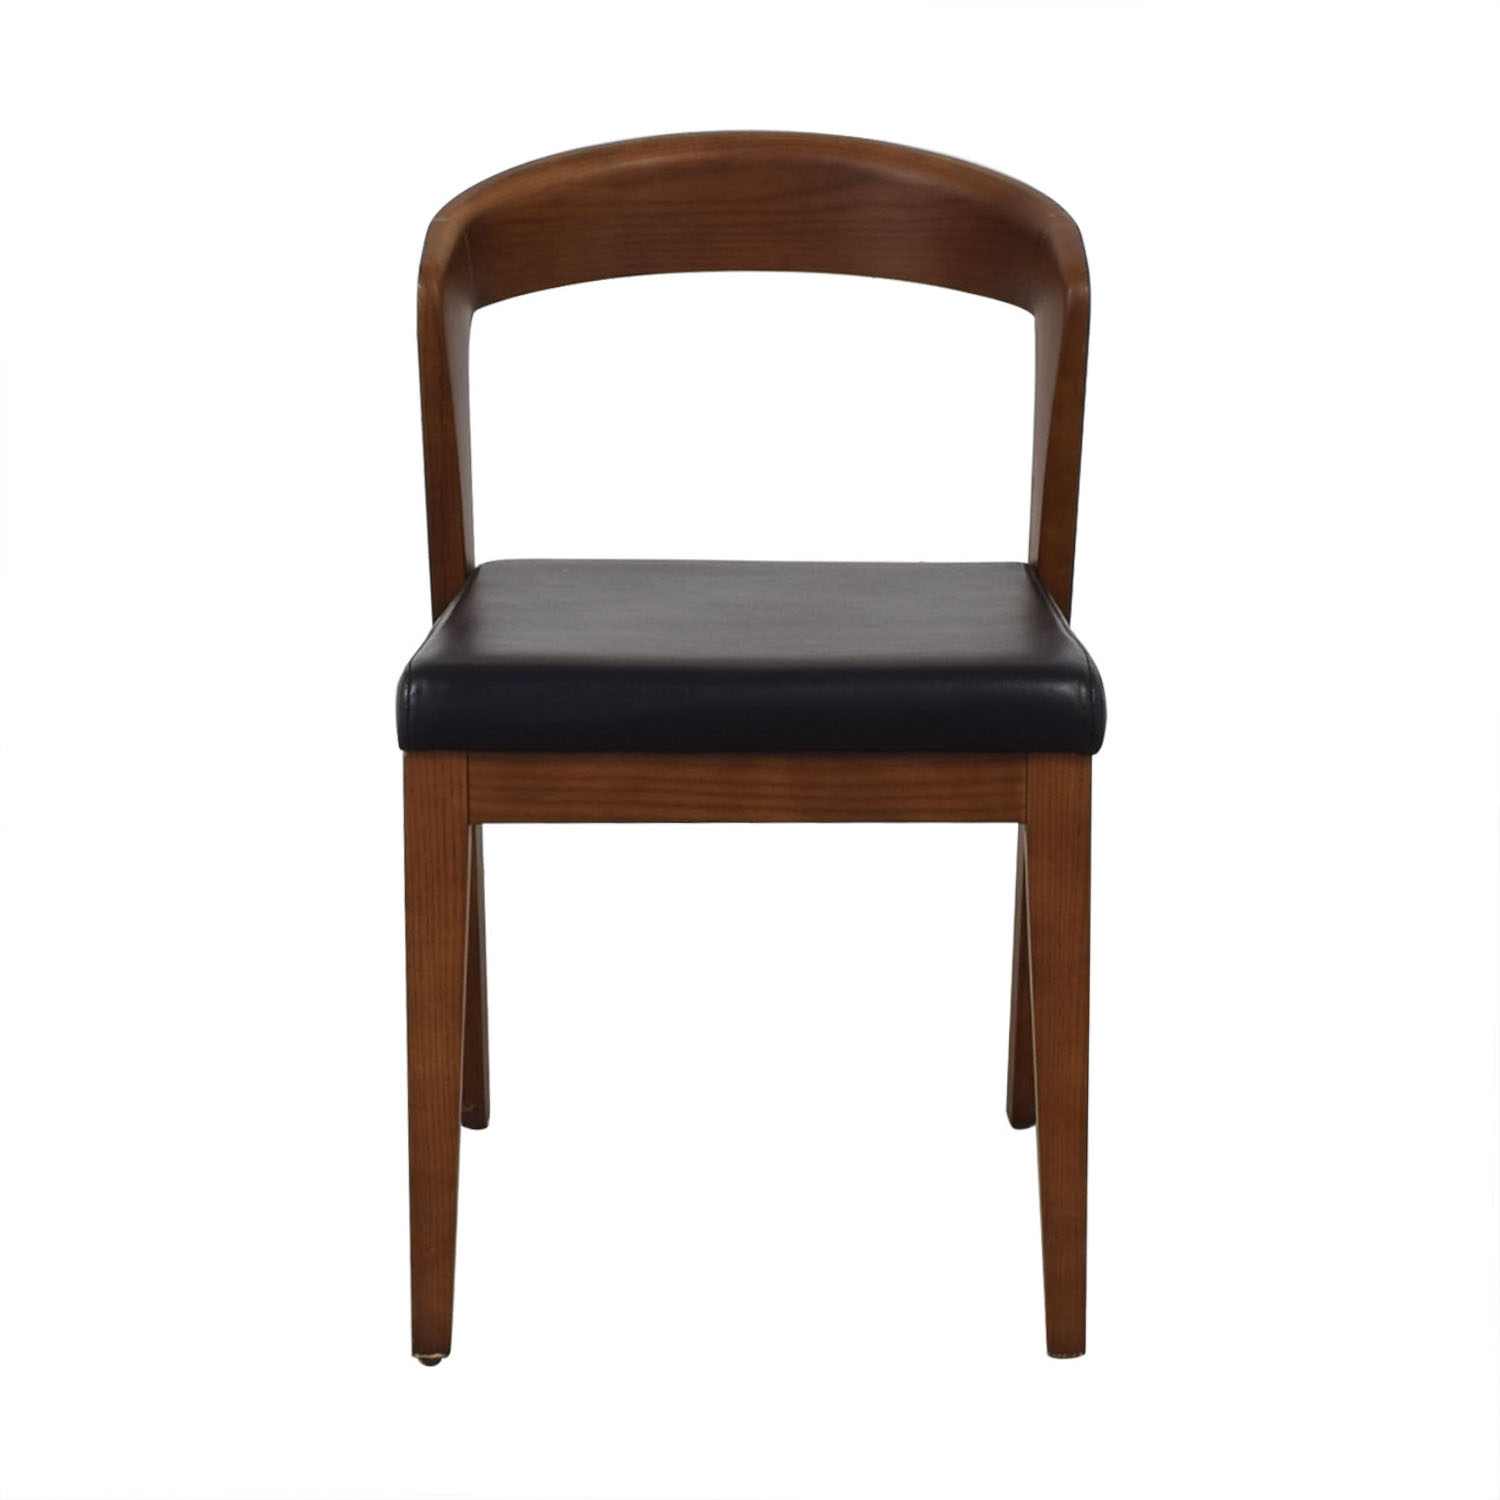 76 Off Control Brand Control Brand Mid Century Dining Chair Chairs